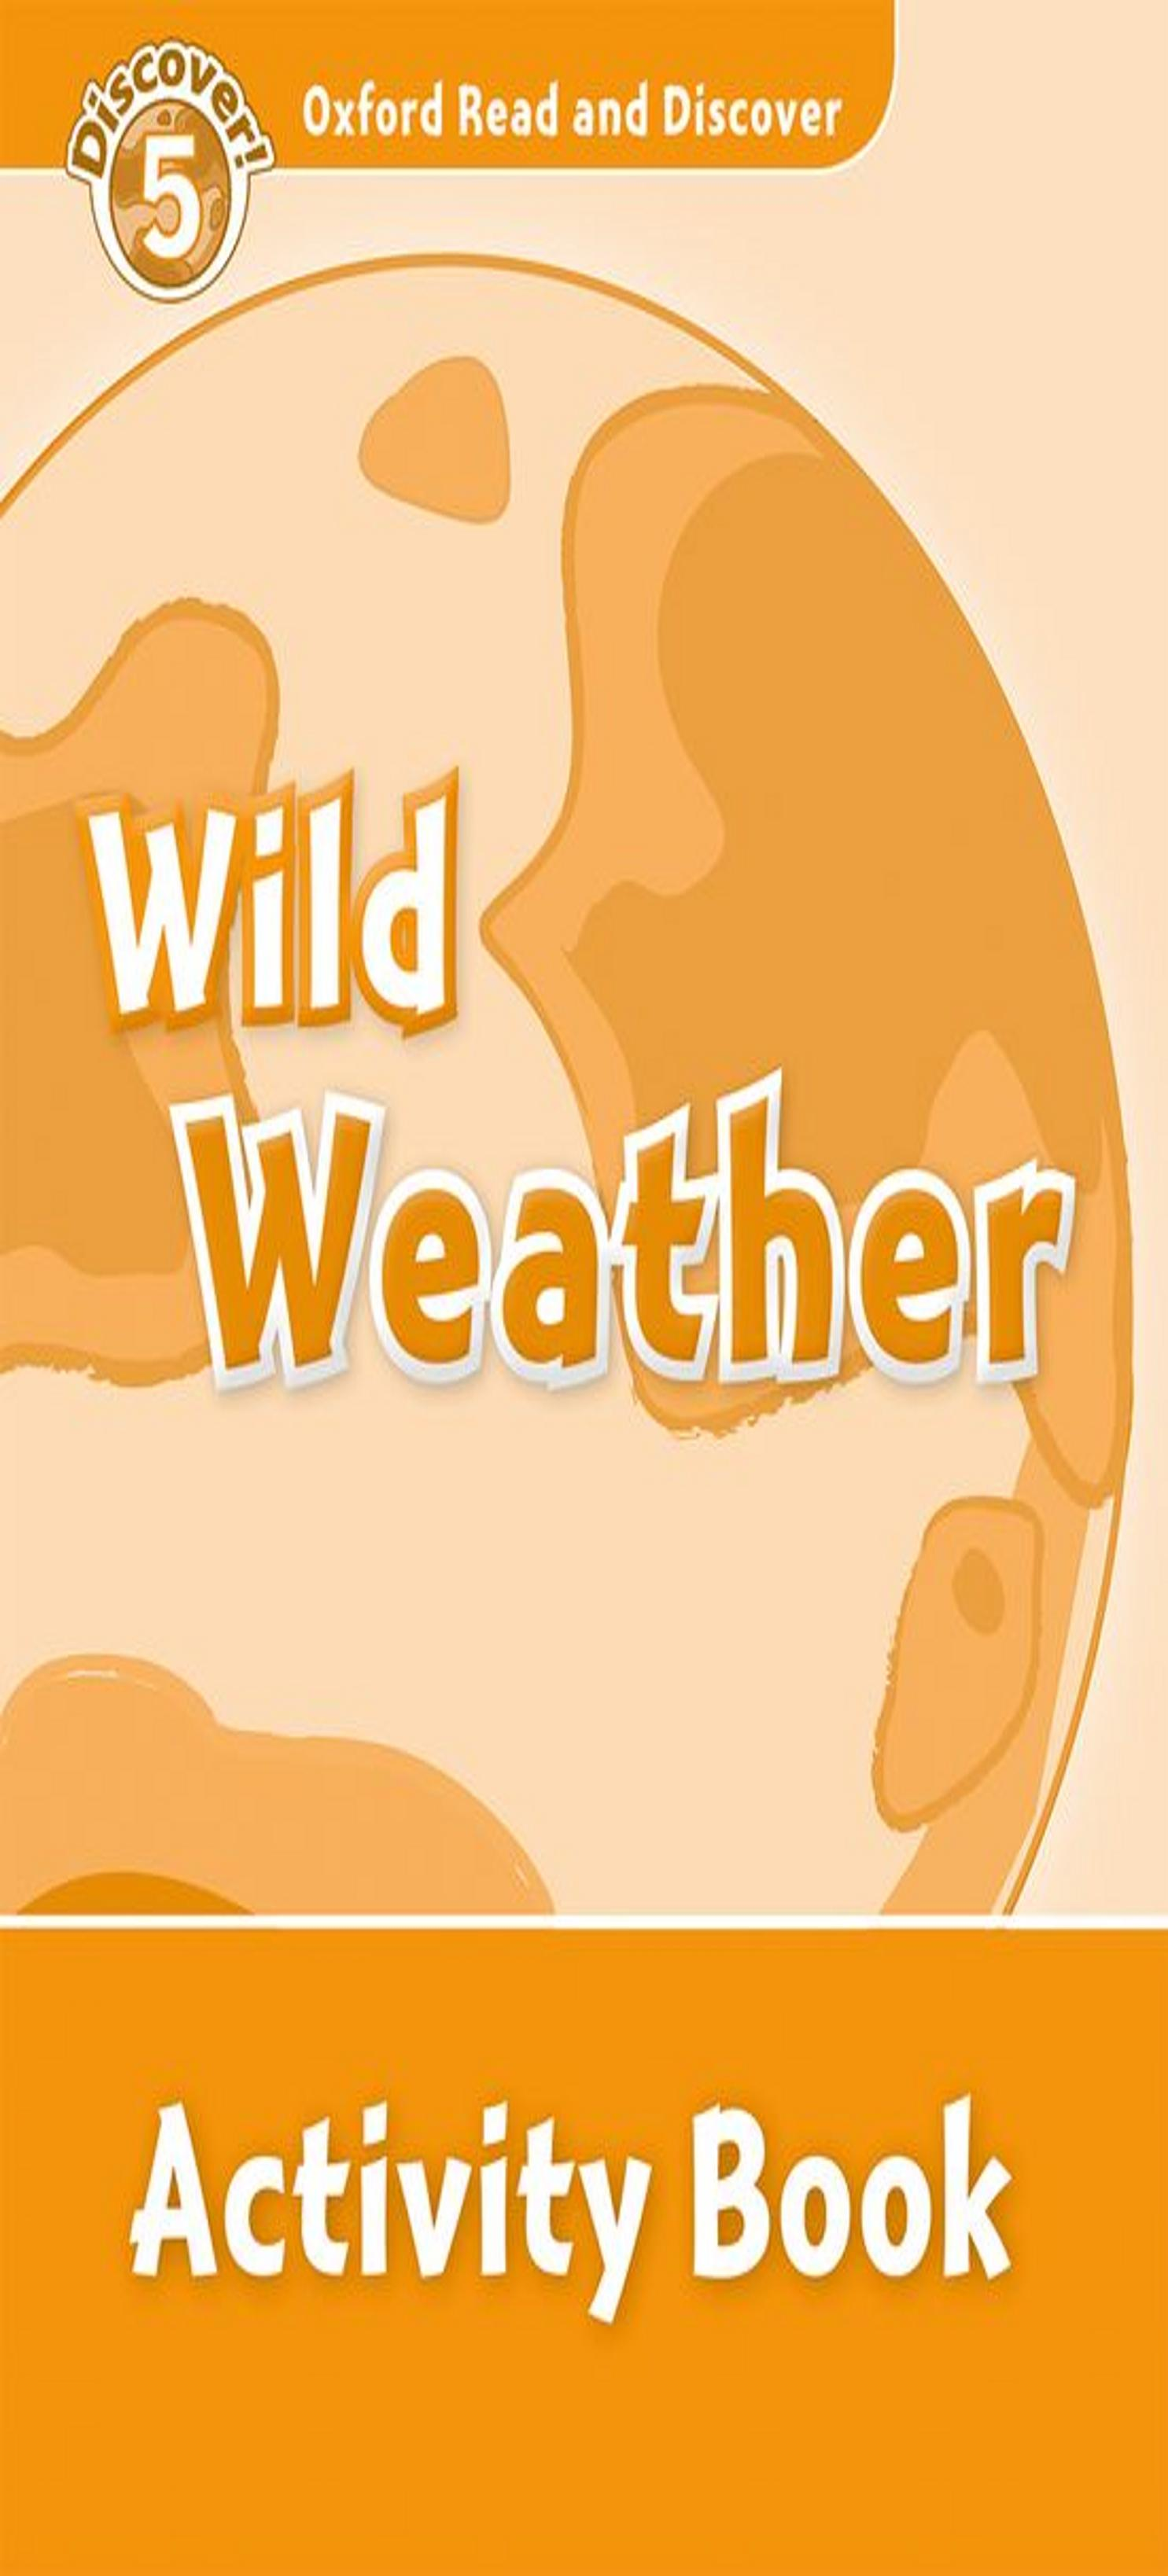 OXF RAD 5 WILD WEATHER AB